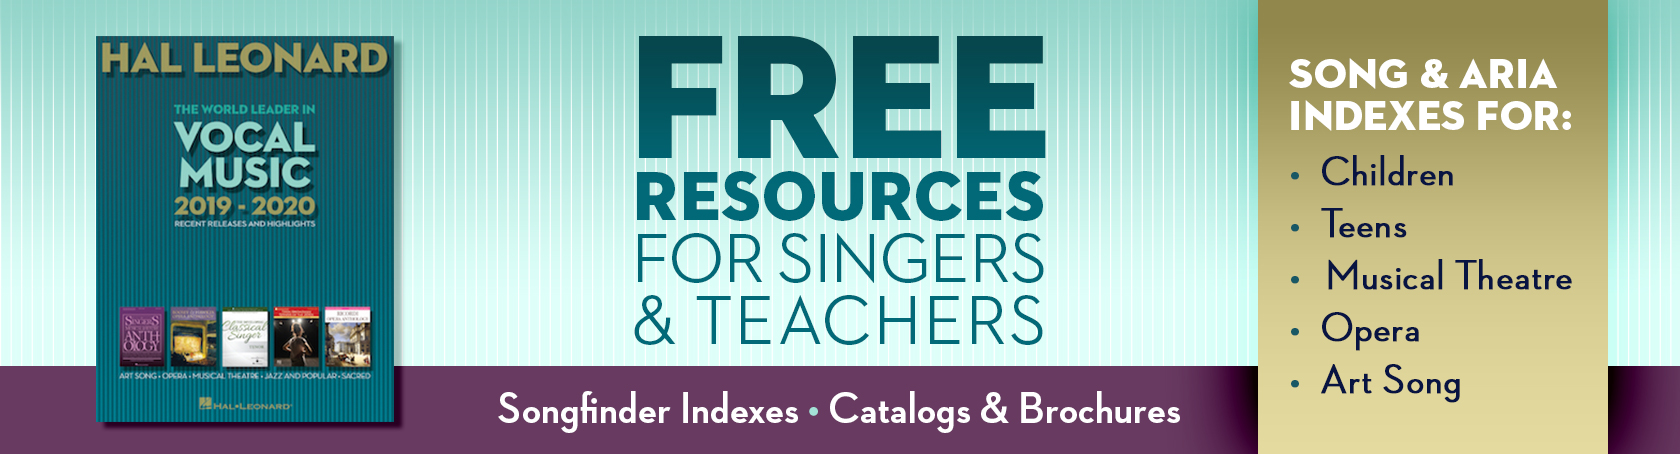 Promos & Resources - View Promos & Teacher Resources